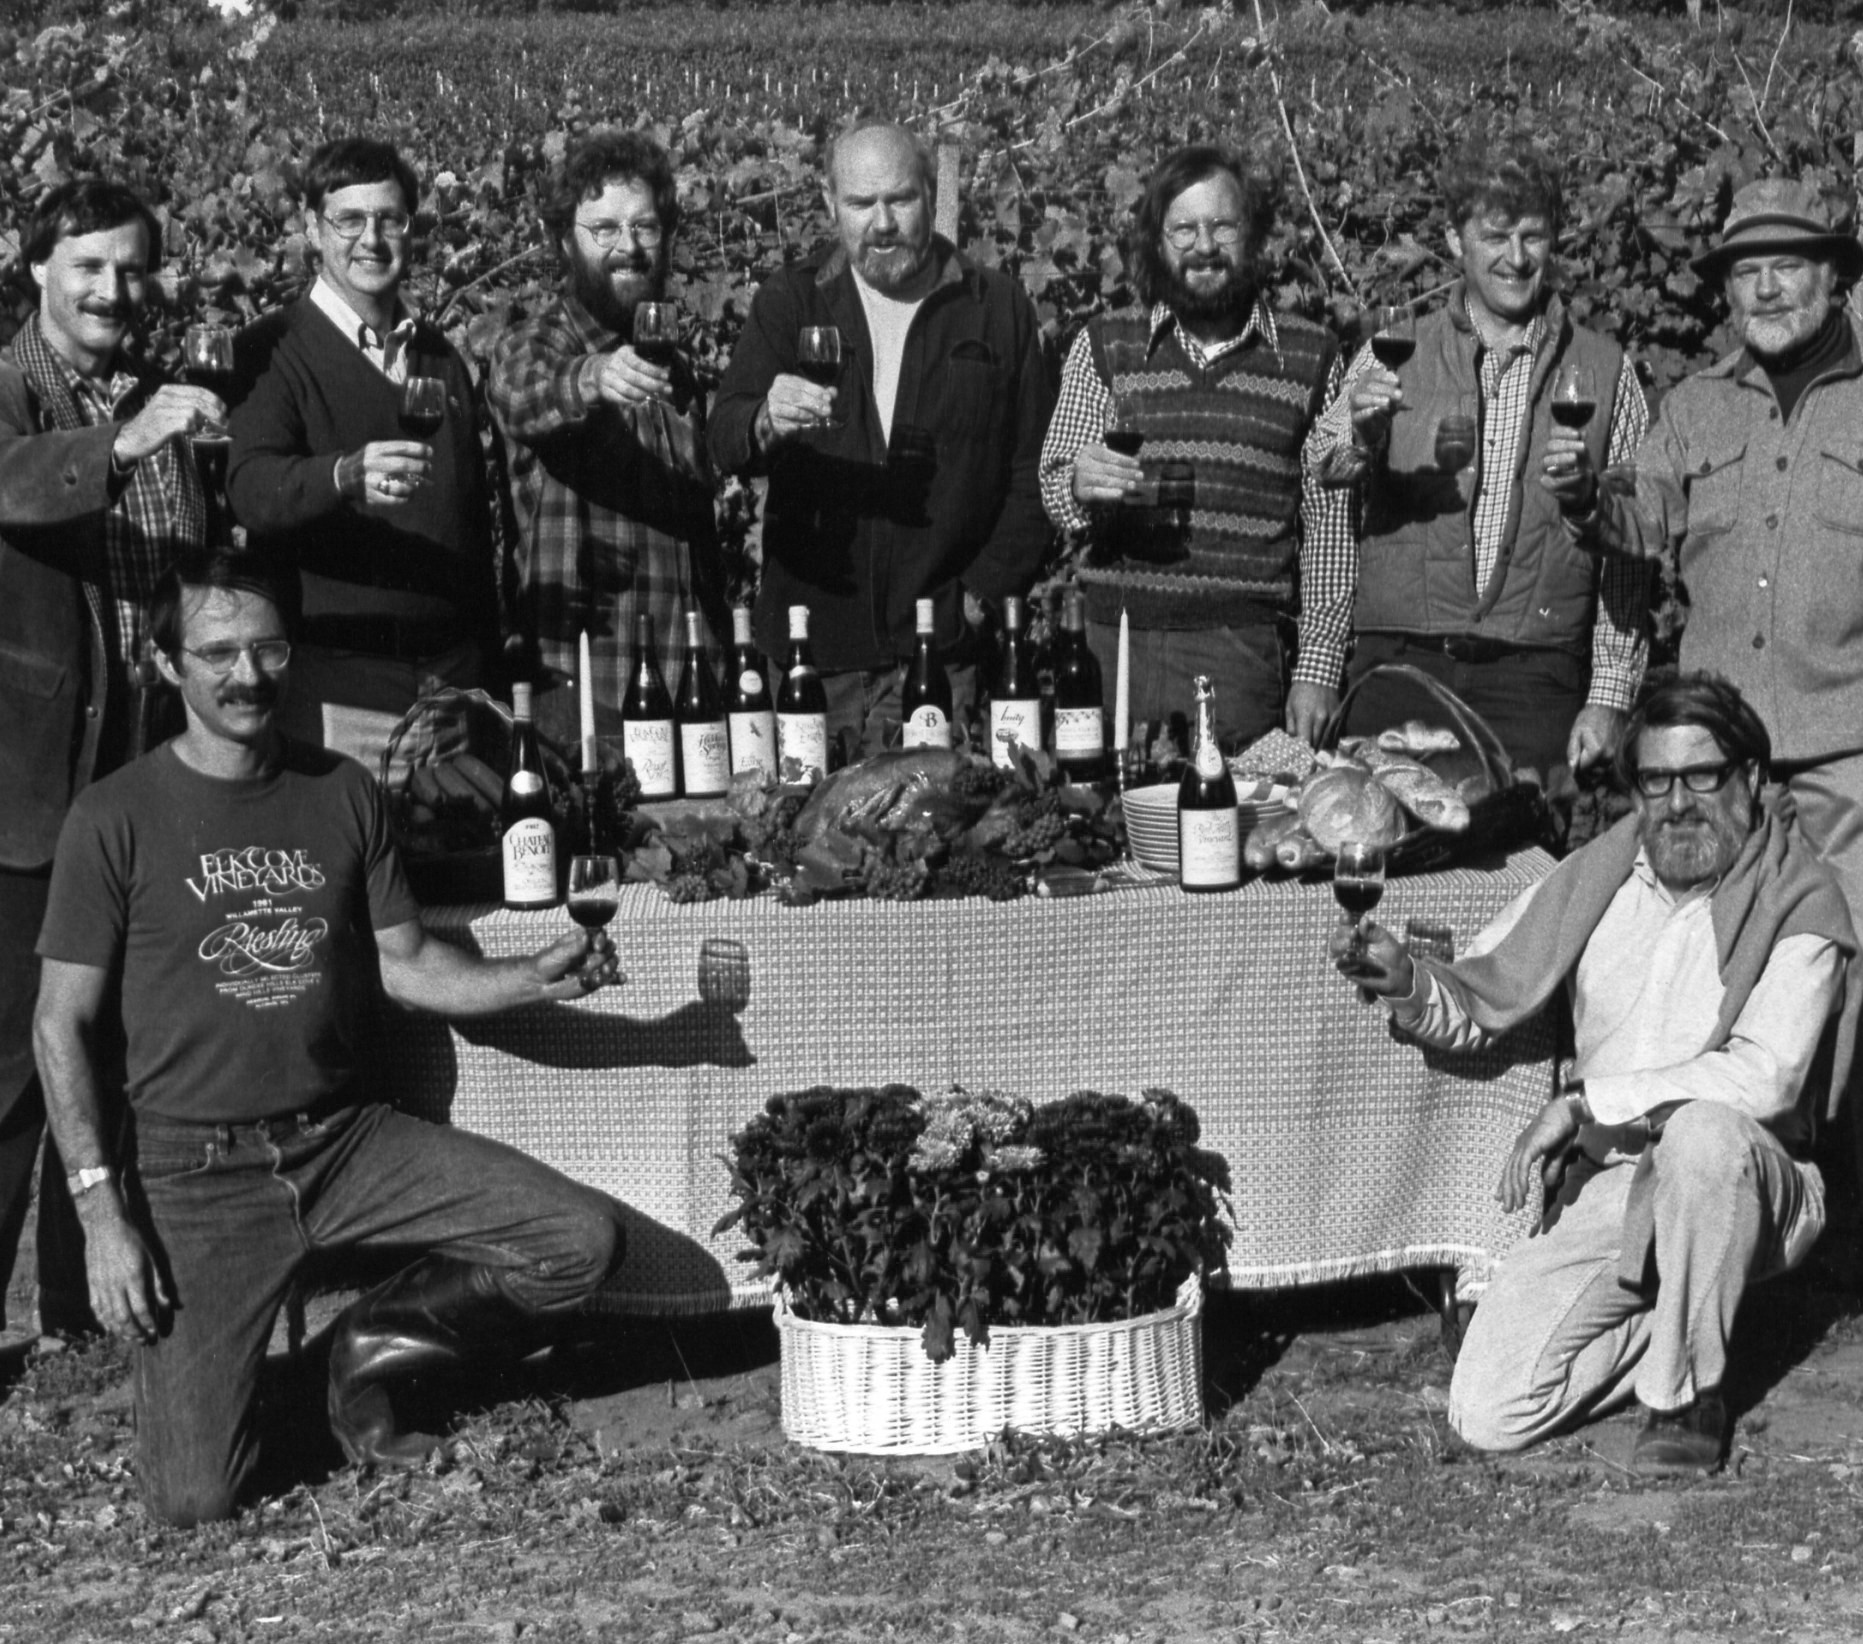 1983_Founding members of the Yamhill County Wineries Association_Courtesy Linfield College Archive